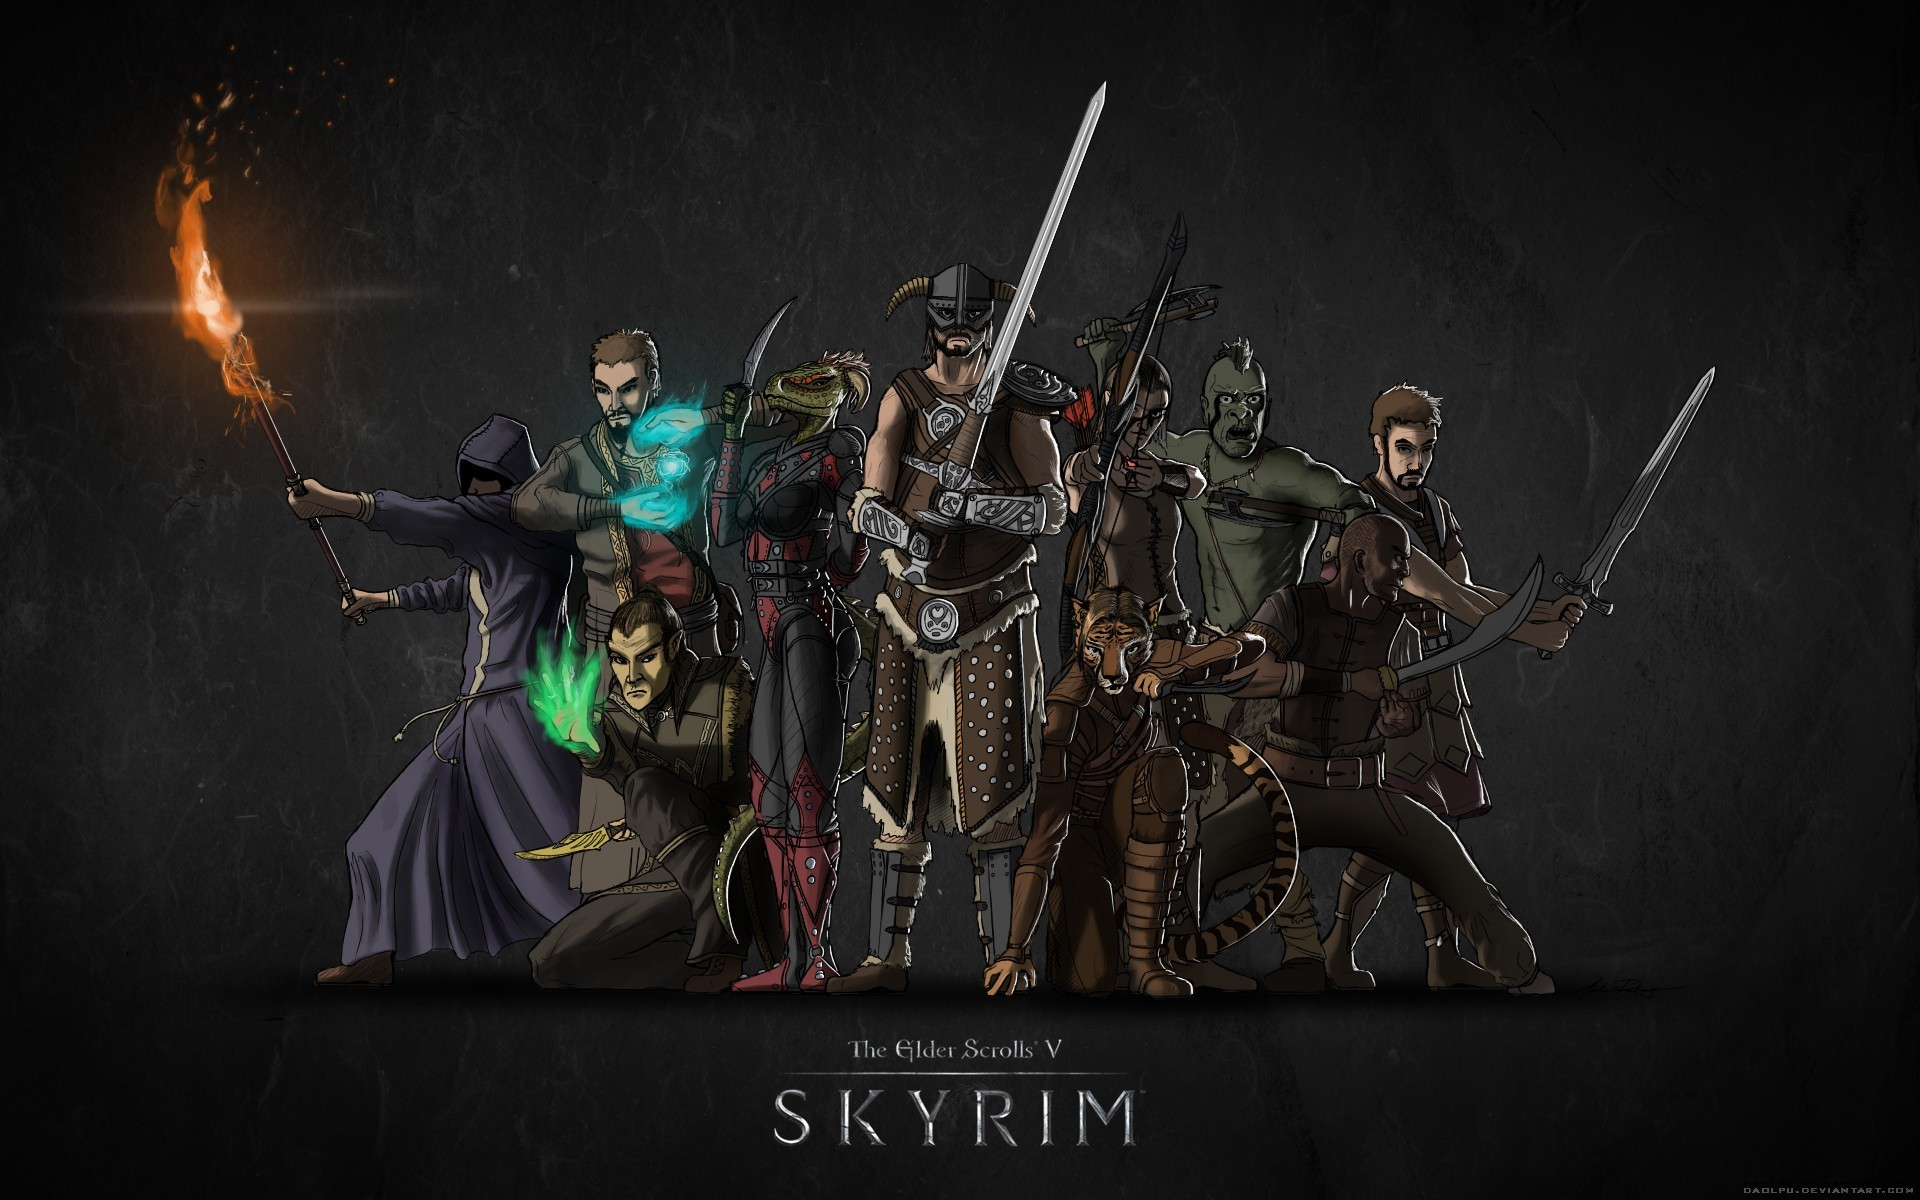 Wallpaper The Elder Scrolls V: Skyrim Team